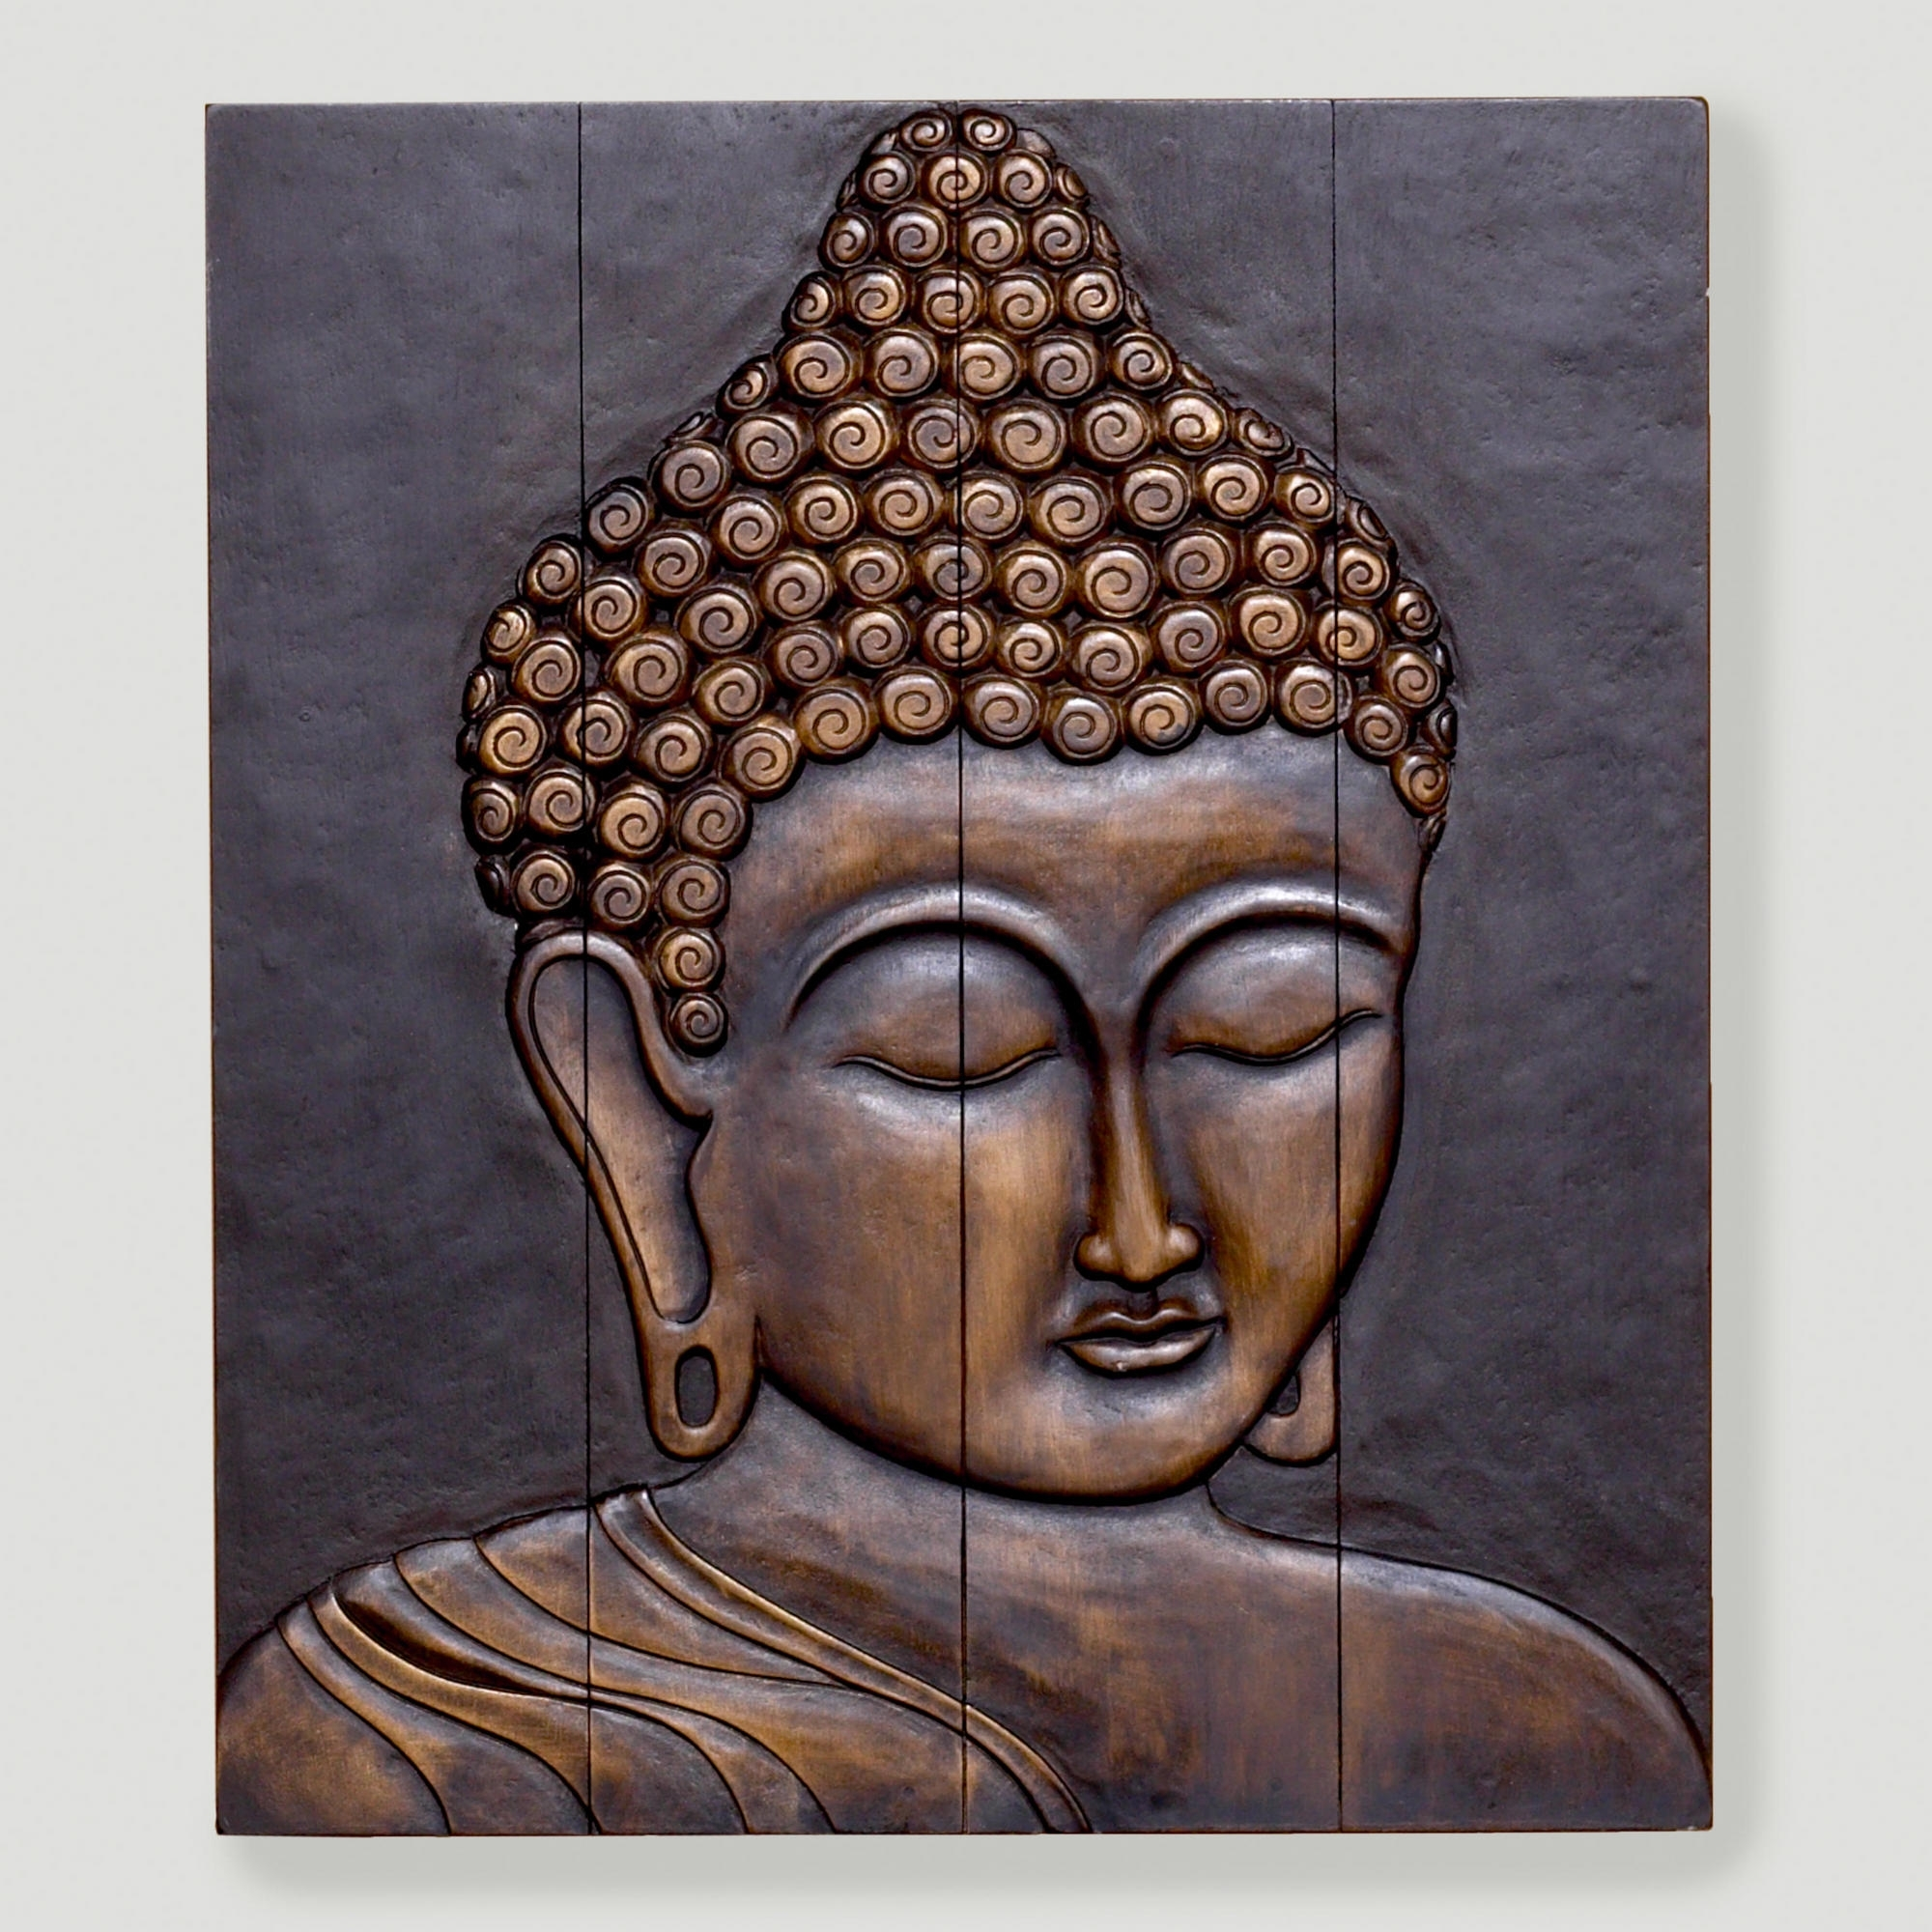 Hand Carved Wooden Thai Buddha Face Wall Art Plaque: 15 Ideas Of Buddha Wooden Wall Art